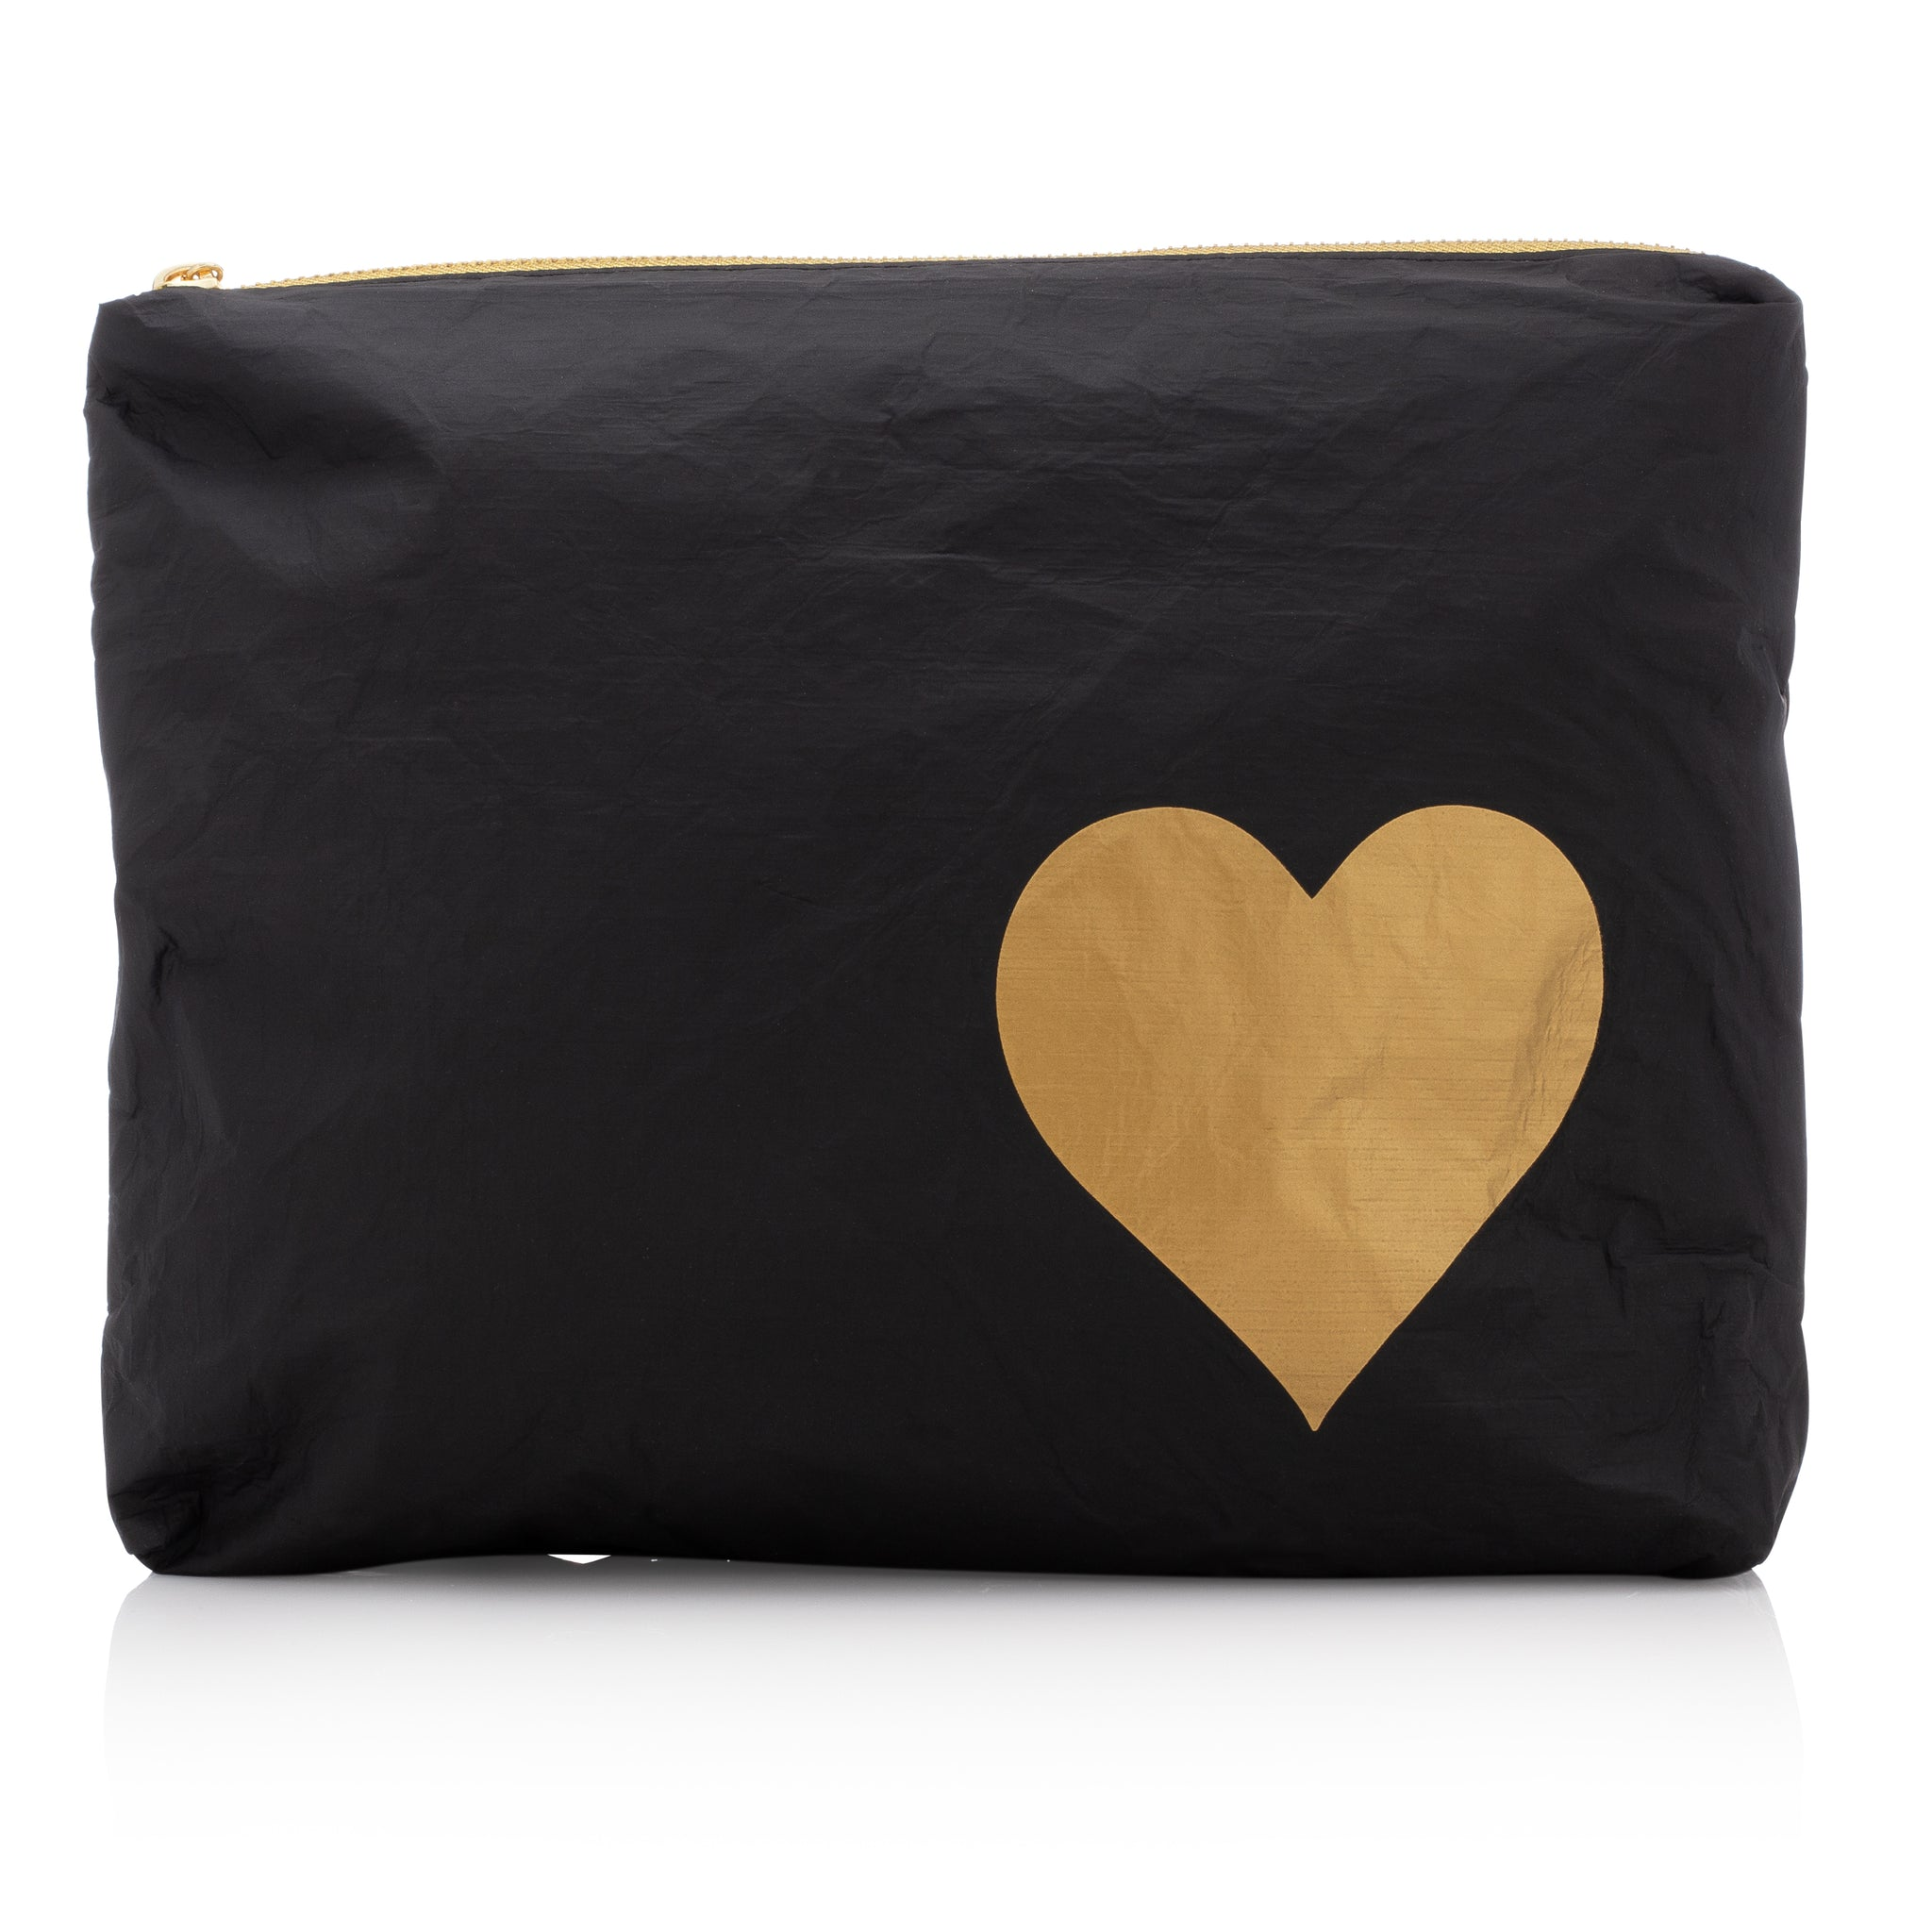 Medium Pack - Black HLT Collection with Metallic Gold Heart